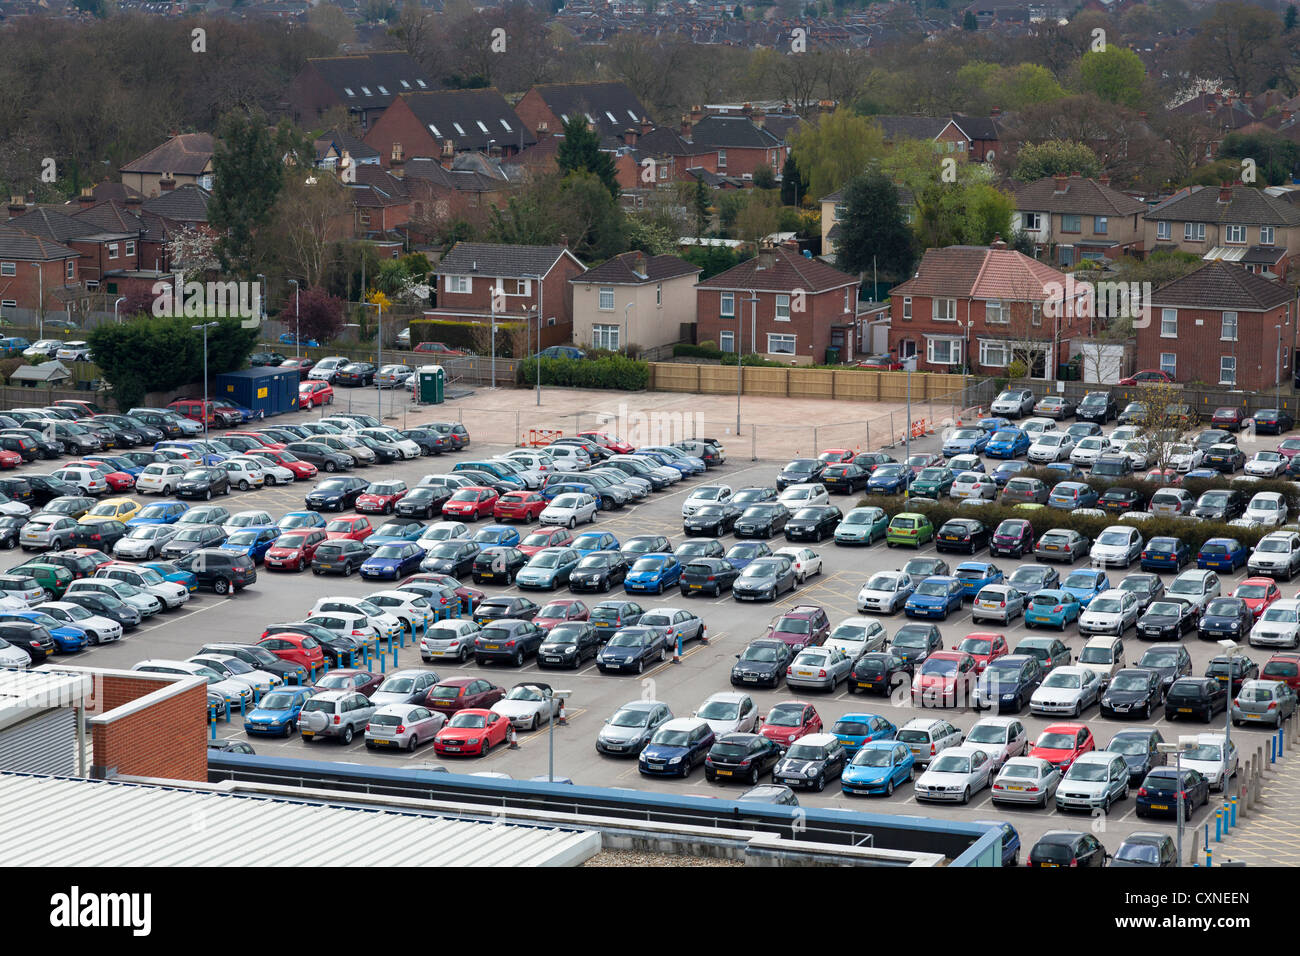 high view of busy full workplace carpark - Stock Image